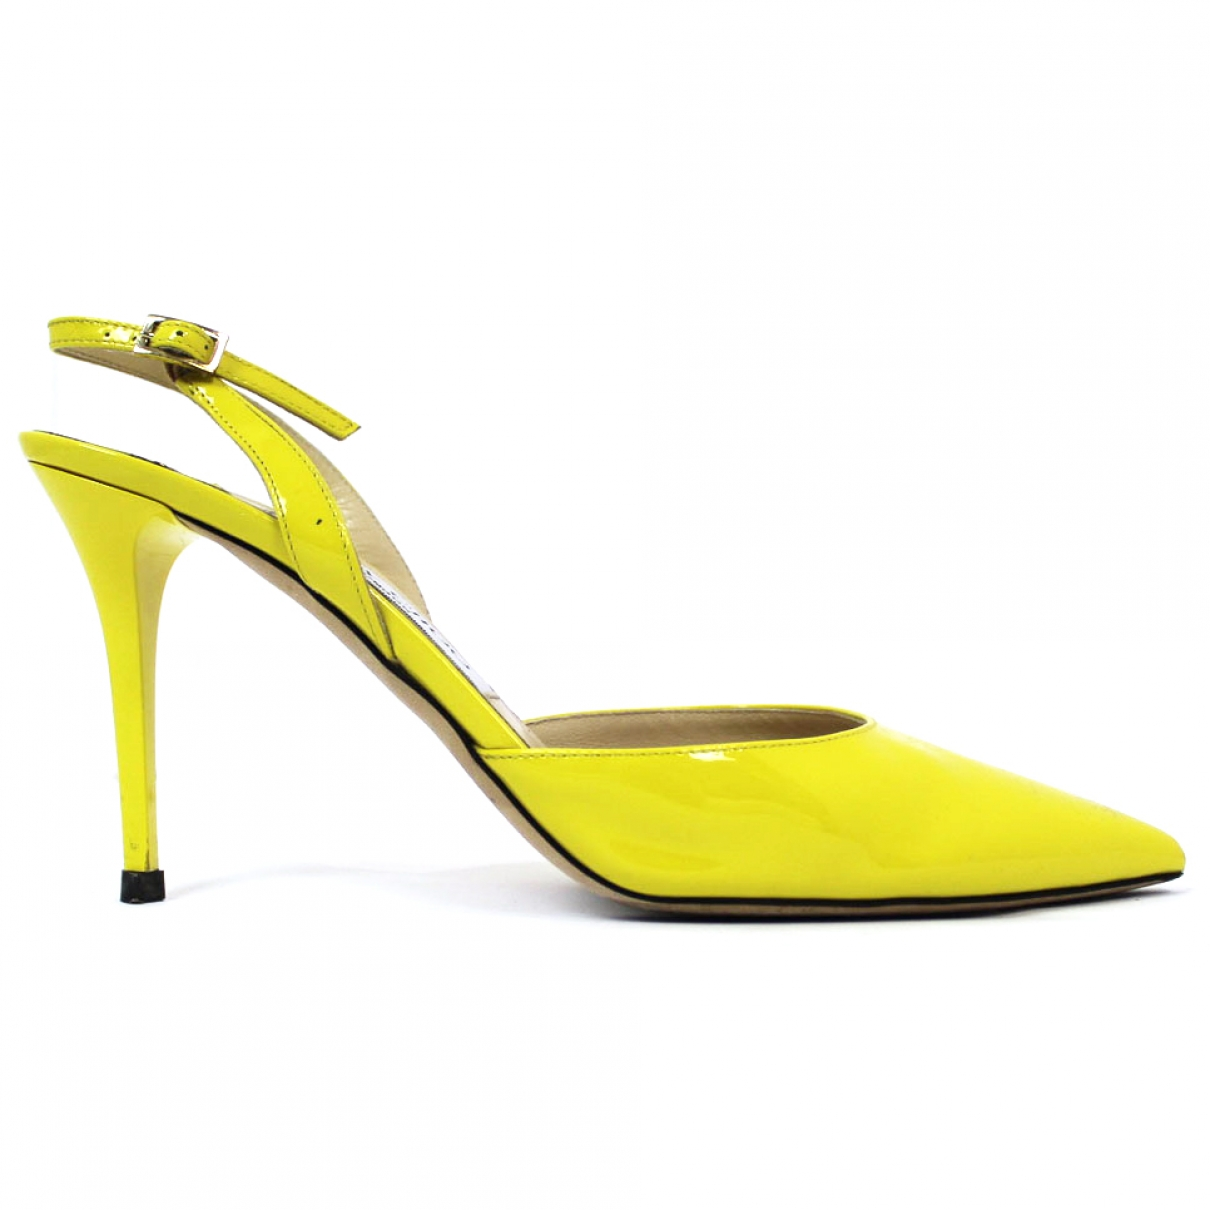 Jimmy Choo \N Yellow Patent leather Heels for Women 38.5 EU